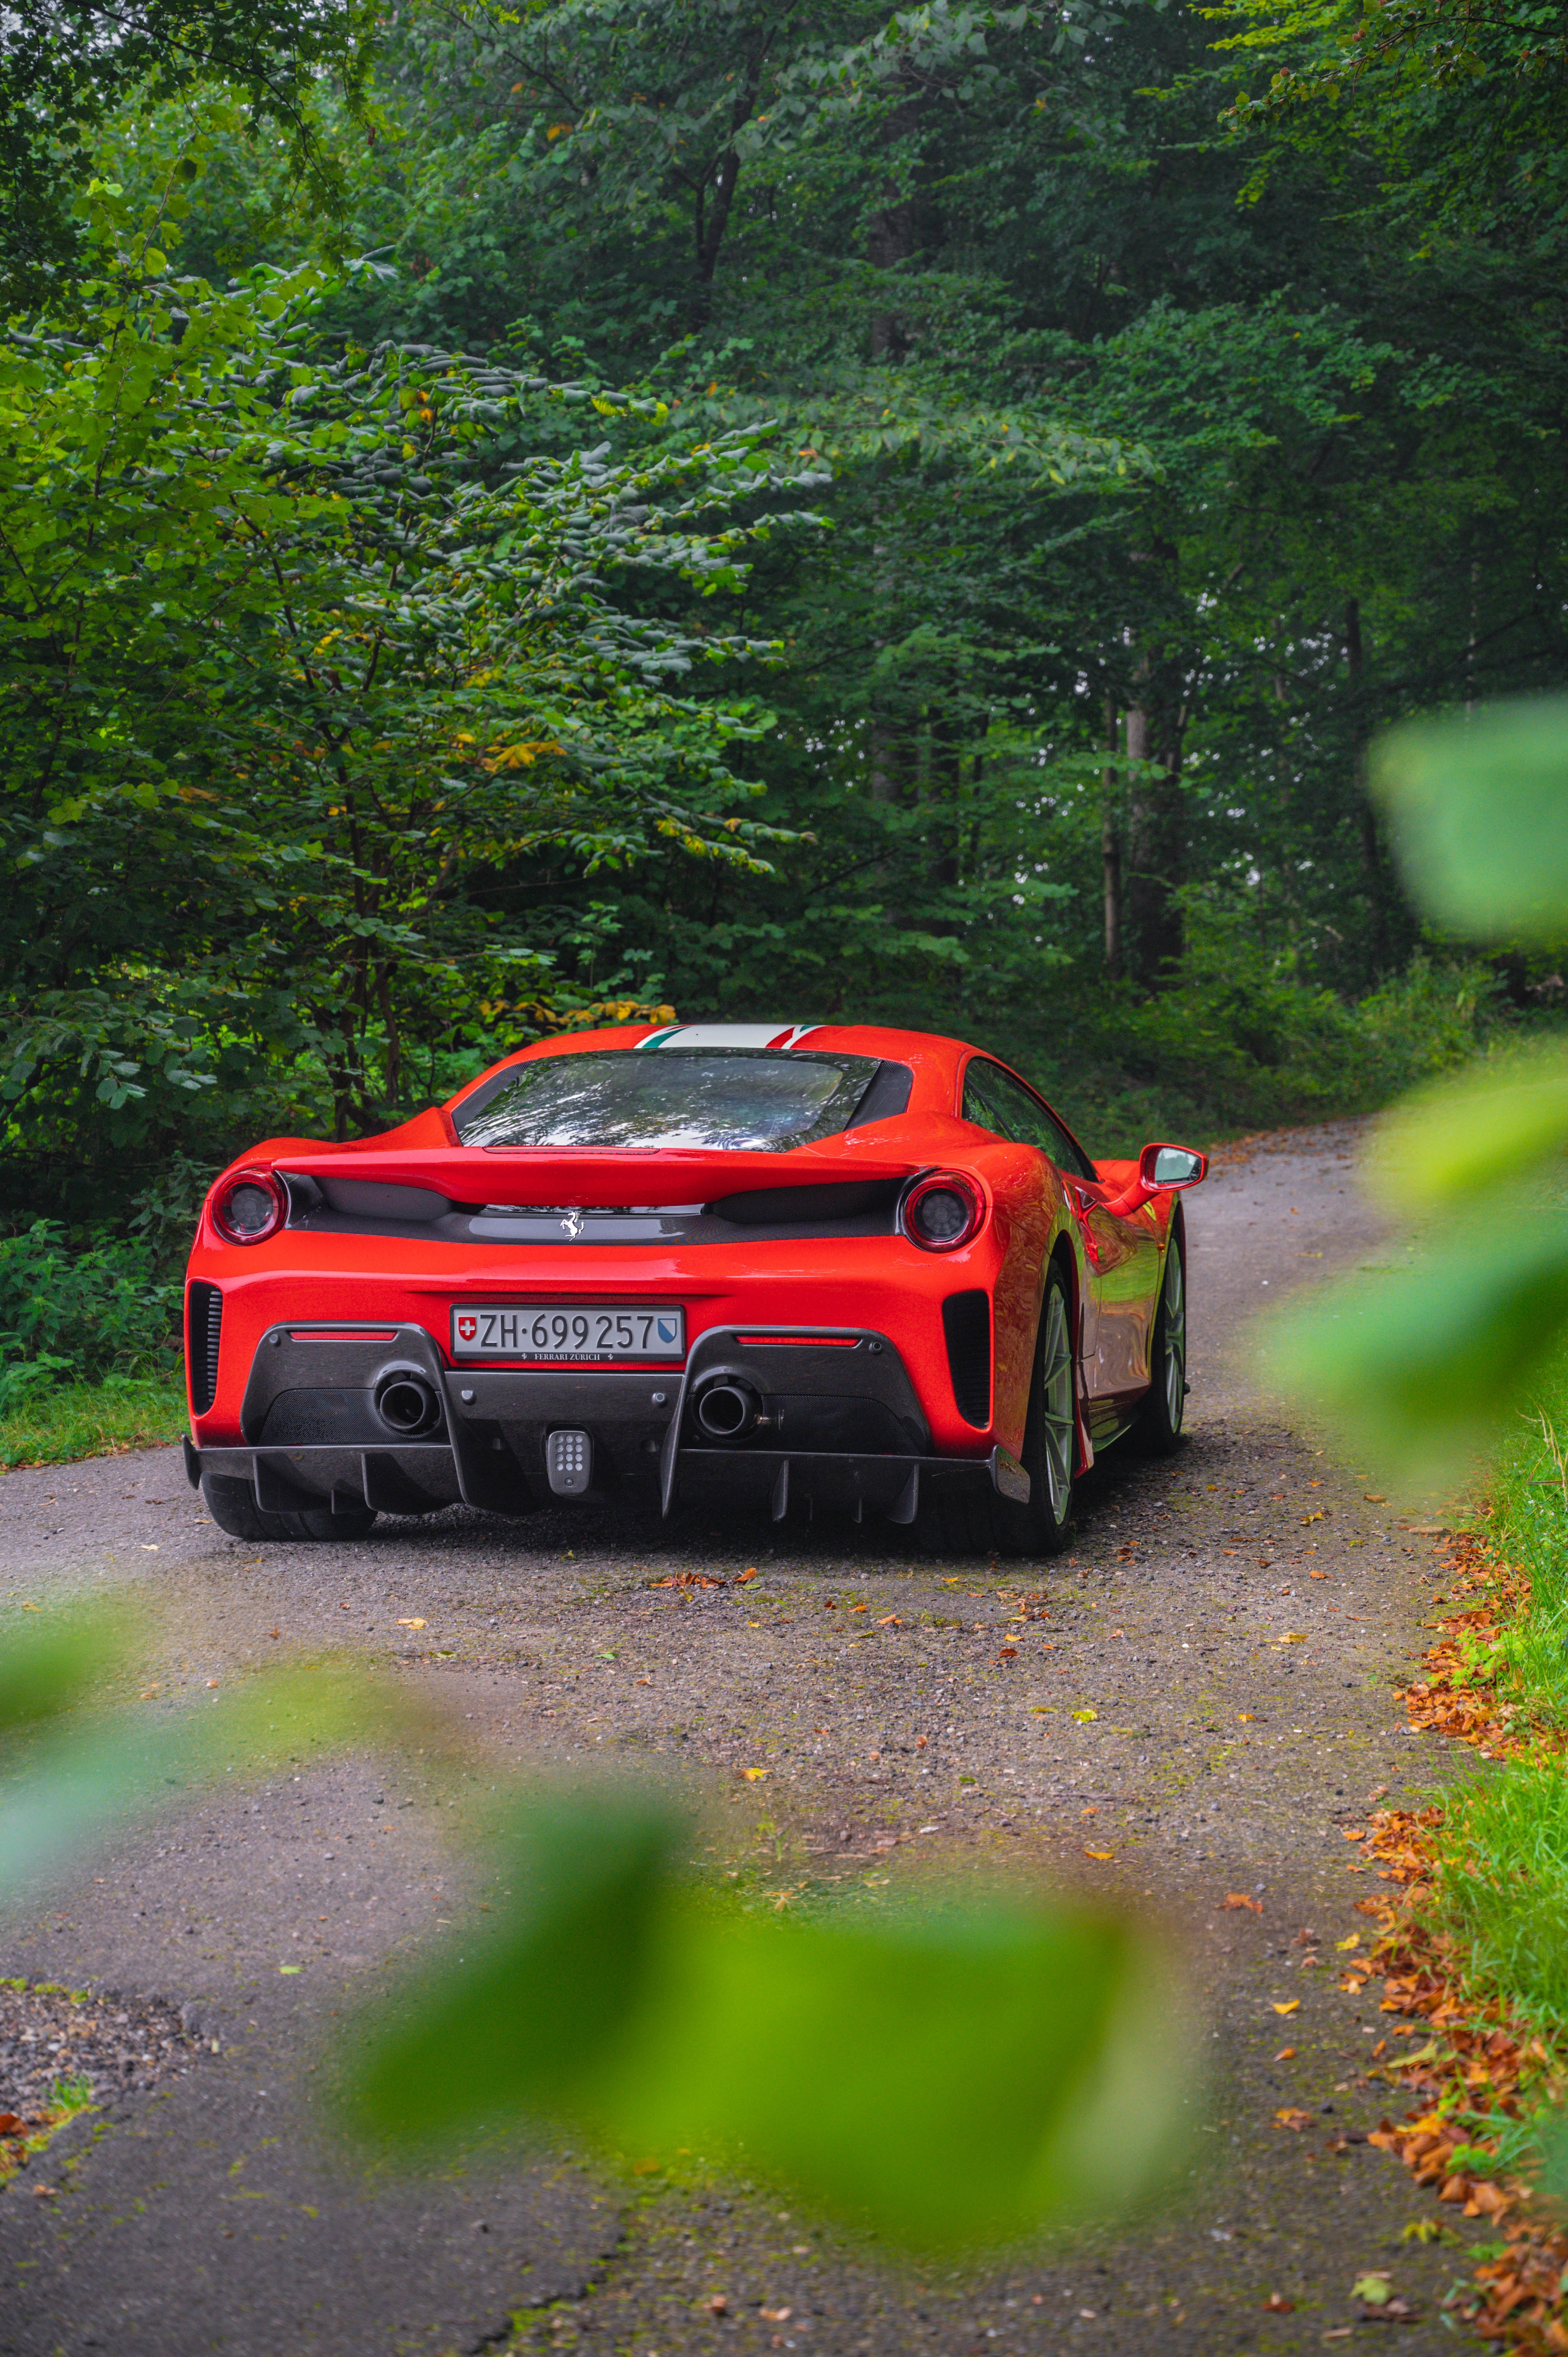 87768 download wallpaper Cars, Ferrari, Car, Sports Car, Sports, Back View, Rear View screensavers and pictures for free